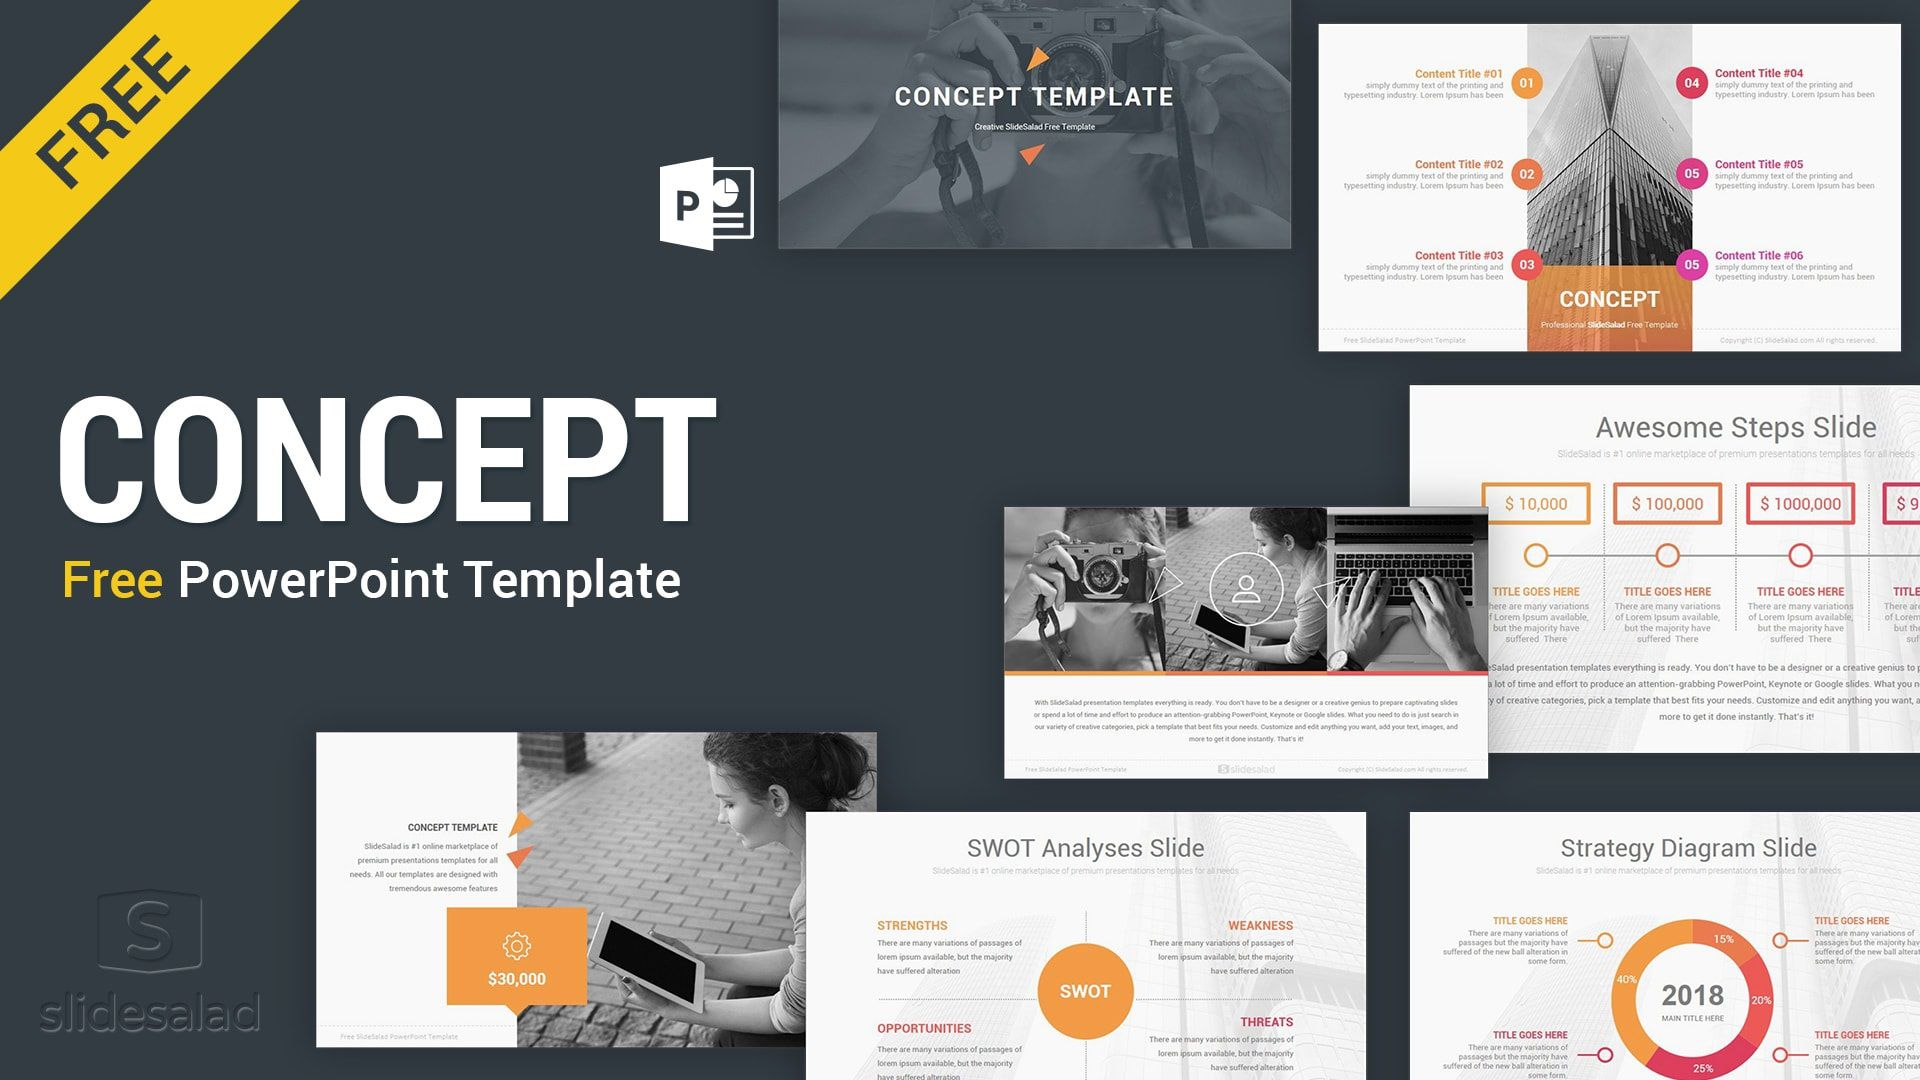 003 Exceptional Free Powerpoint Template Design Highest Clarity  For Student Food BusinesFull